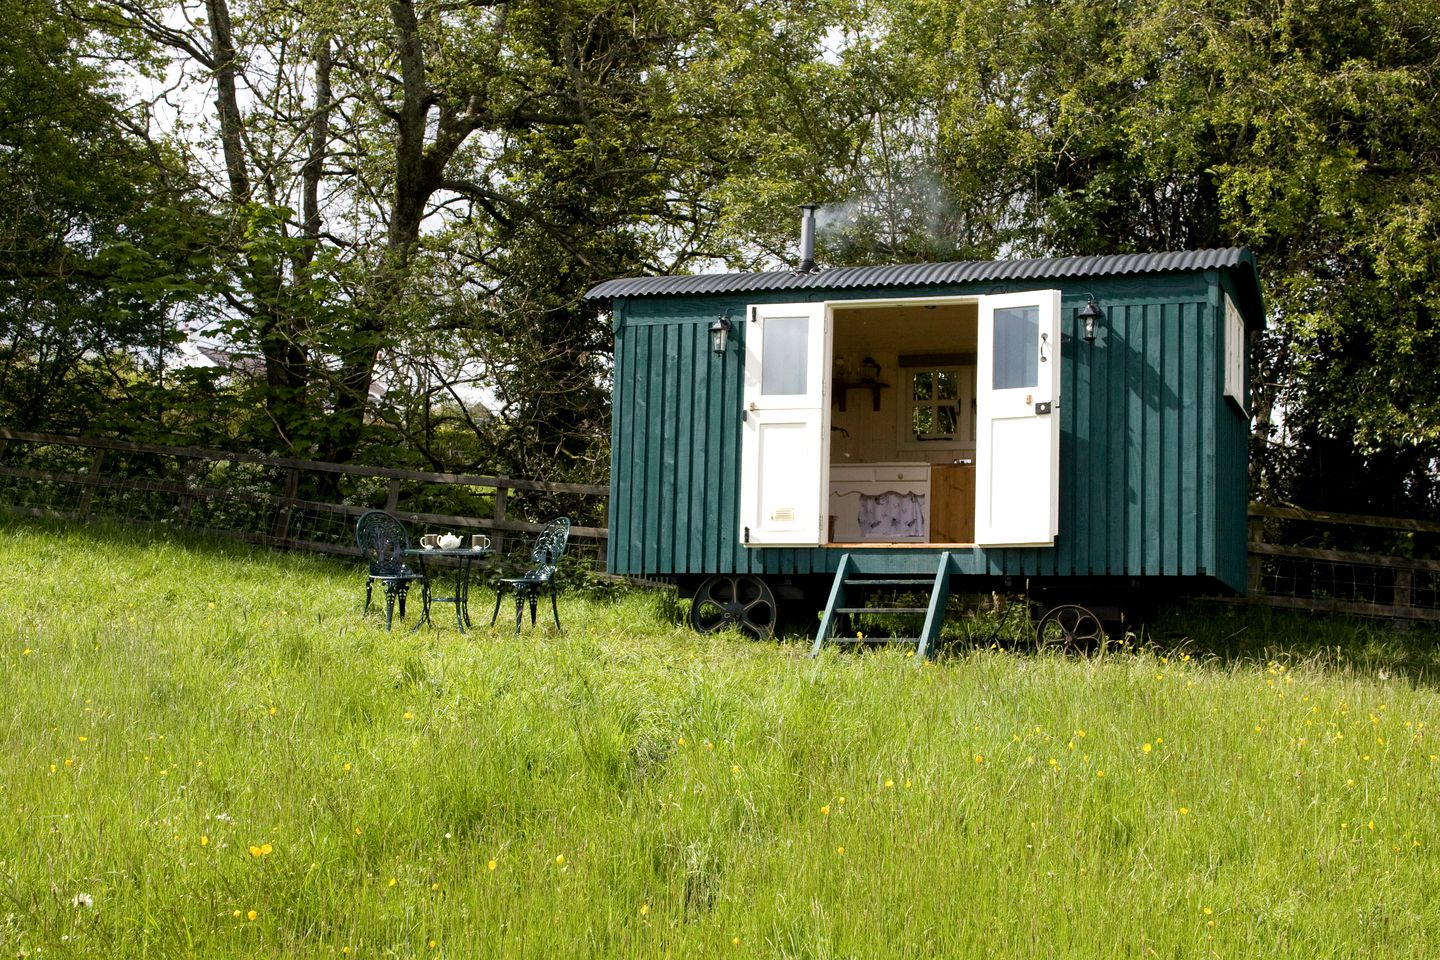 This shepherds hut is perfect for glamping near Wrexham